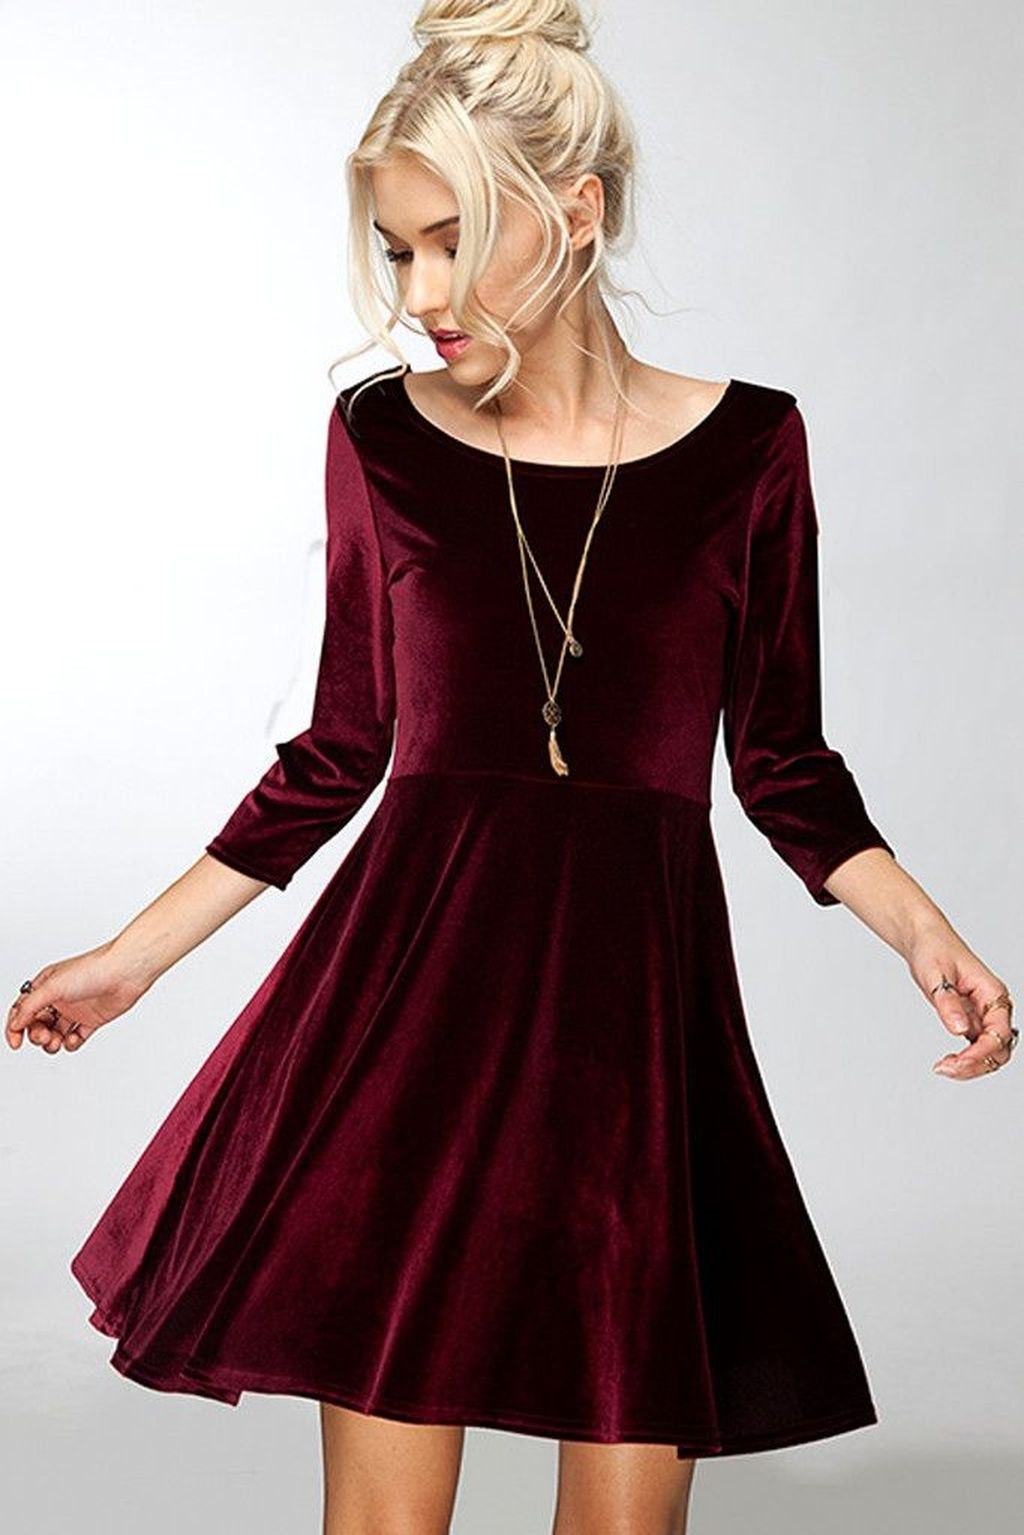 inspiring christmas dress outfit dress outfits elegant and clothes